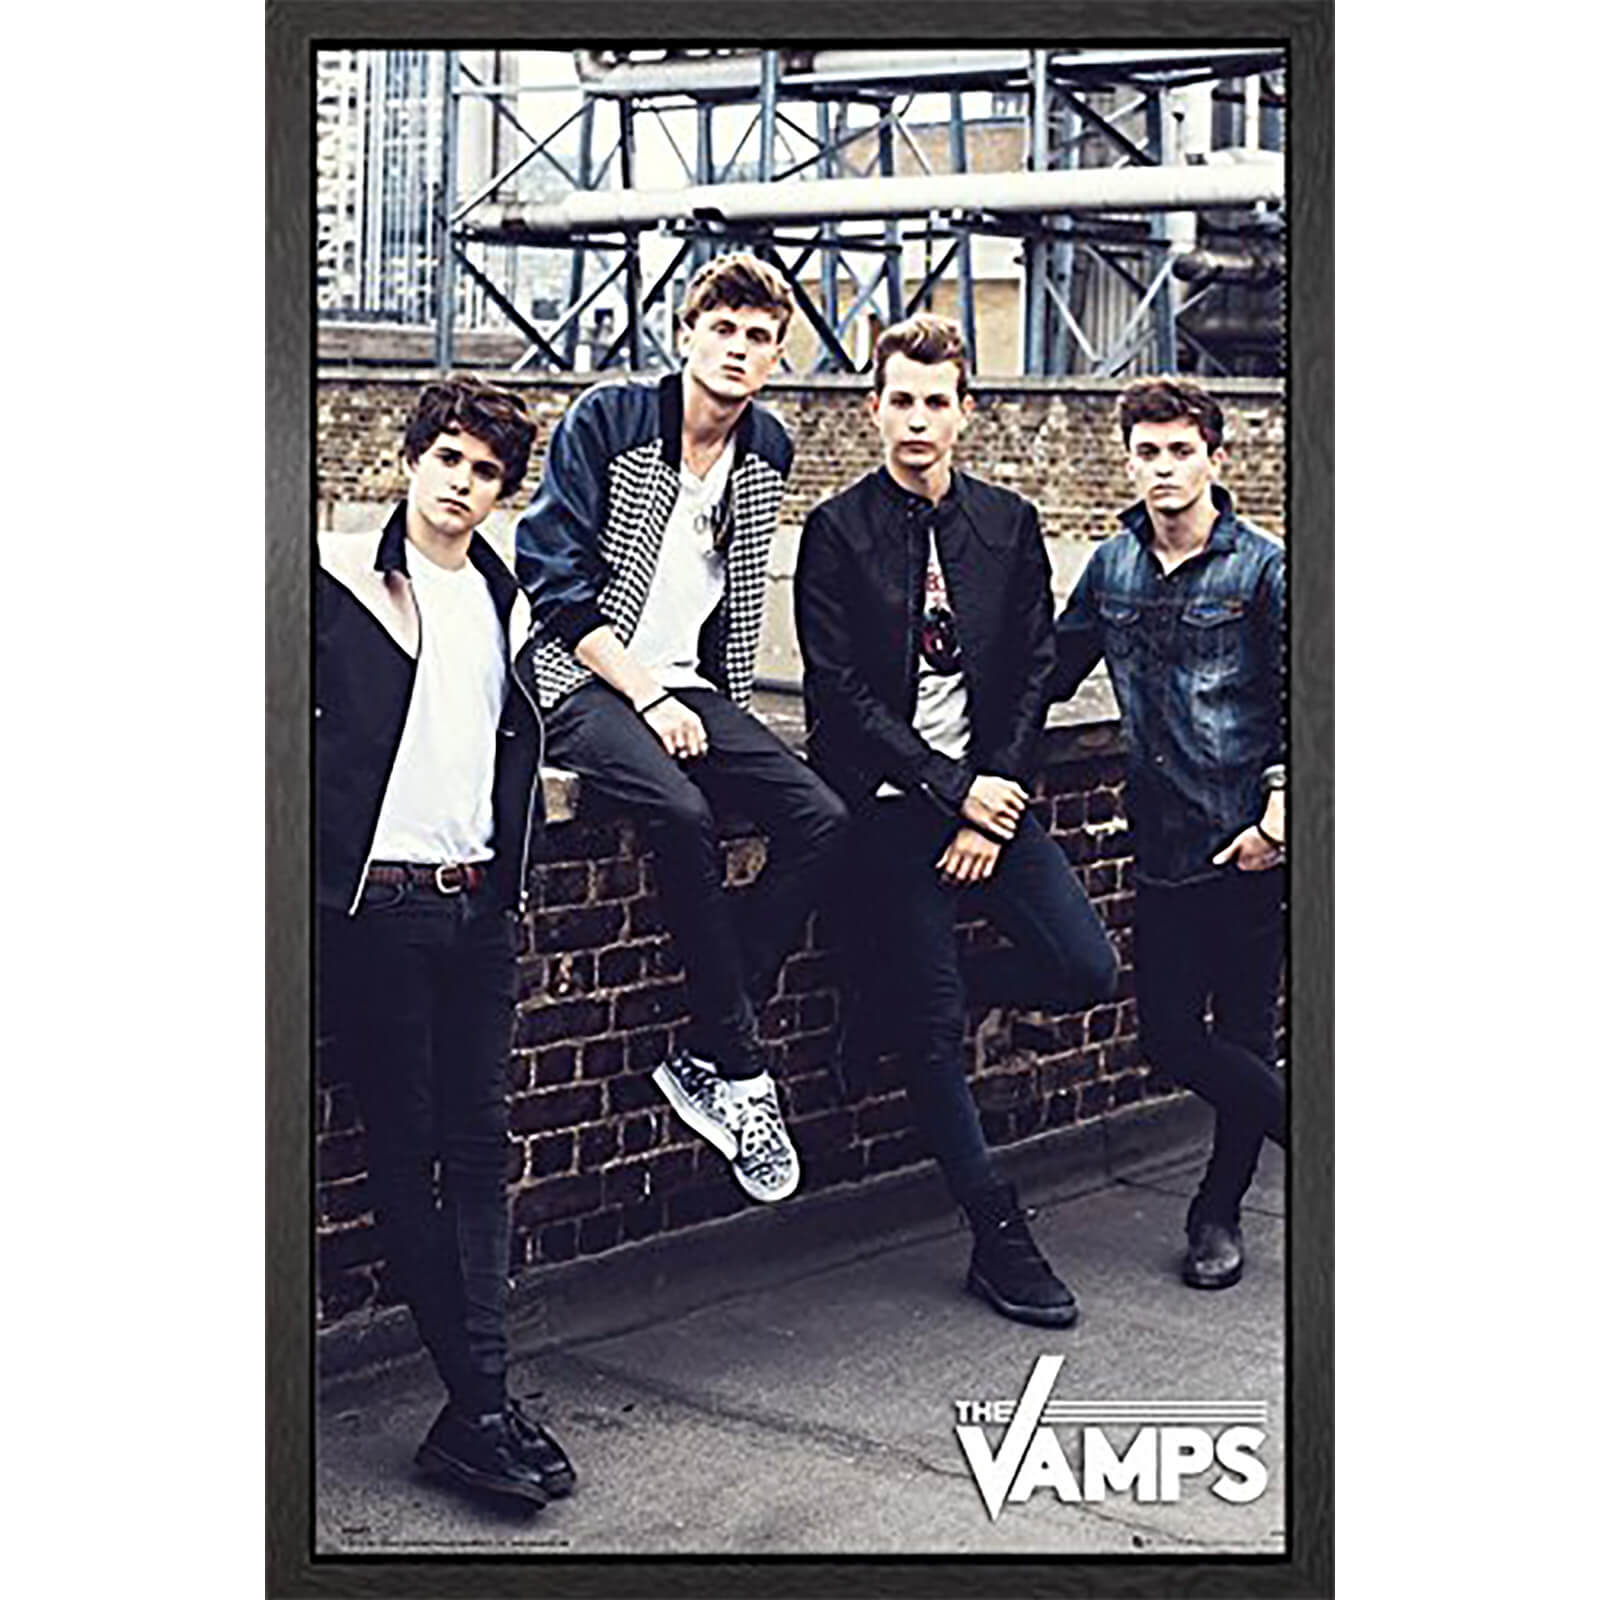 The Vamps Wall - 61 x 91.5cm Framed Maxi Poster